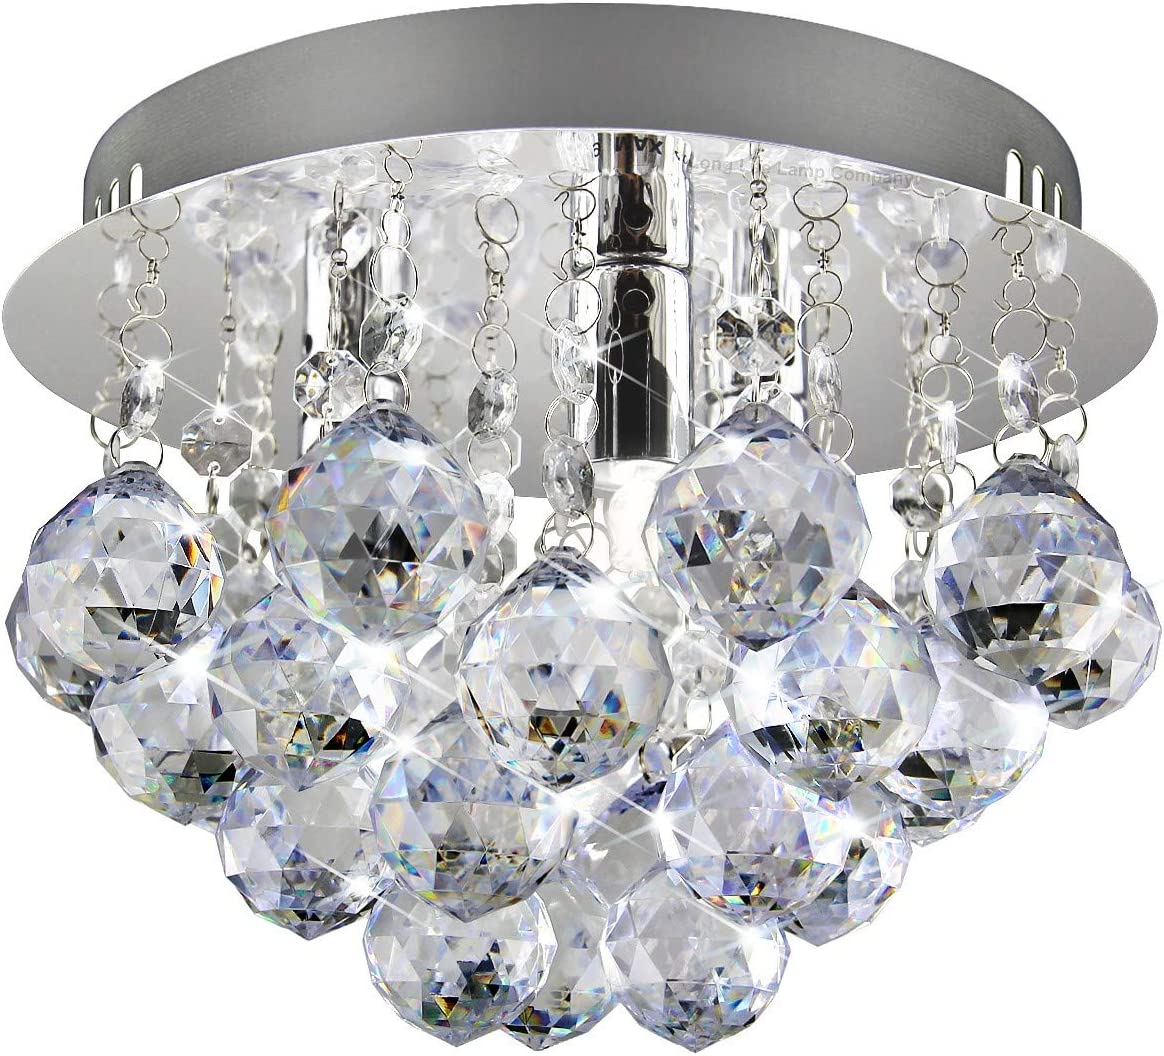 amazon co uk chandeliersmodern small round chandelier ceiling light droplet effect mini flush mount reflective base m0070